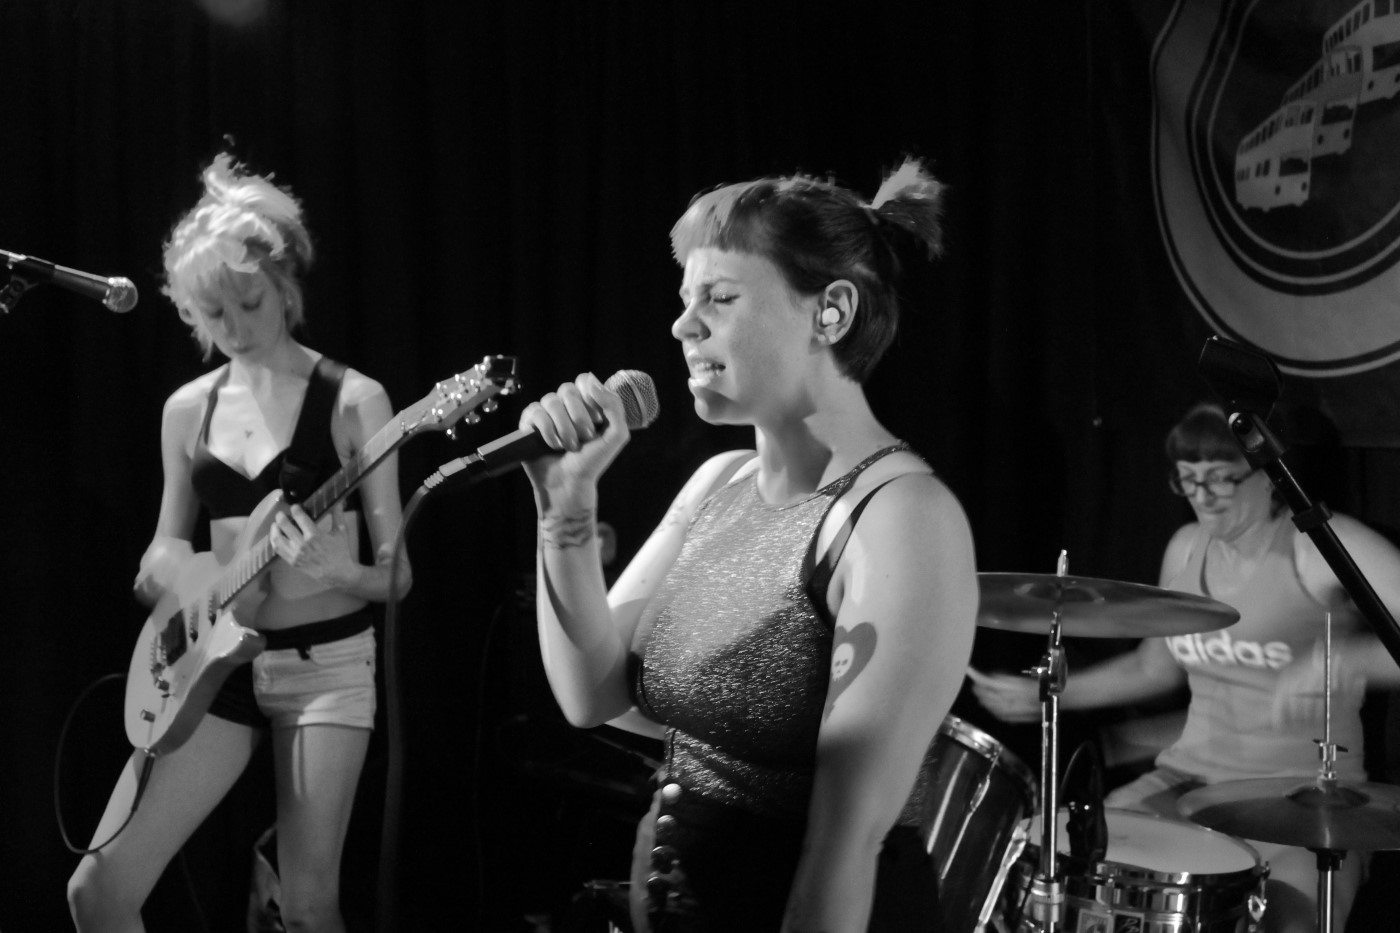 Greyscale. A white woman with dark hair holds a microphone in one hand and sings with her eyes tightly shut. To her left is a white woman with blonde hair, who looks down at the bass guitar she's playing. Behind them is a white woman with dark hair who's playing drums.